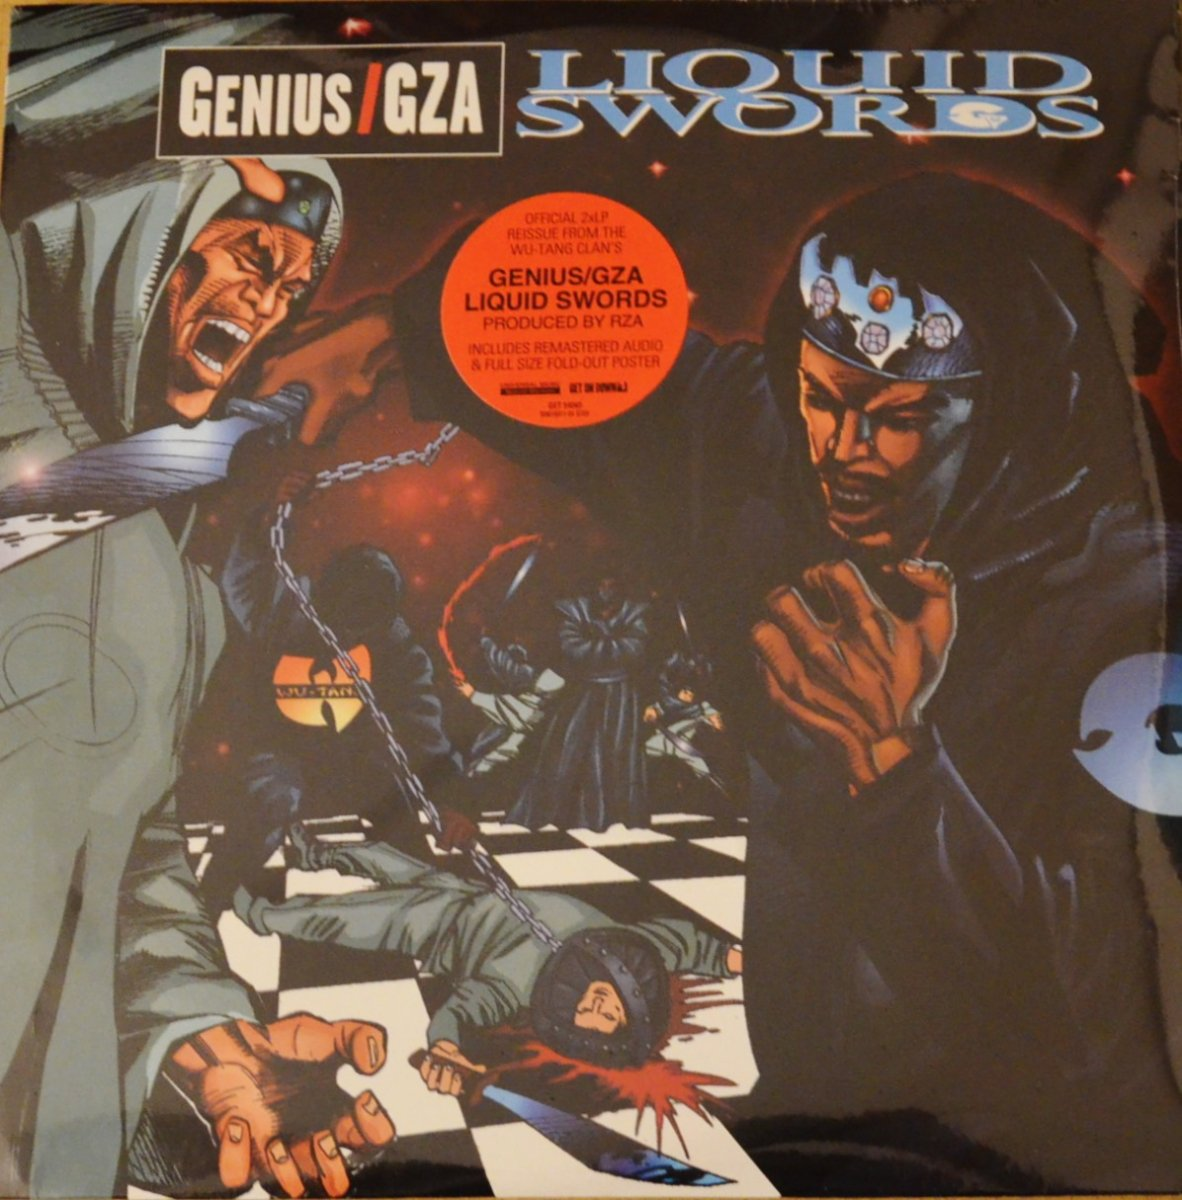 GENIUS / GZA / LIQUID SWORDS (2LP)